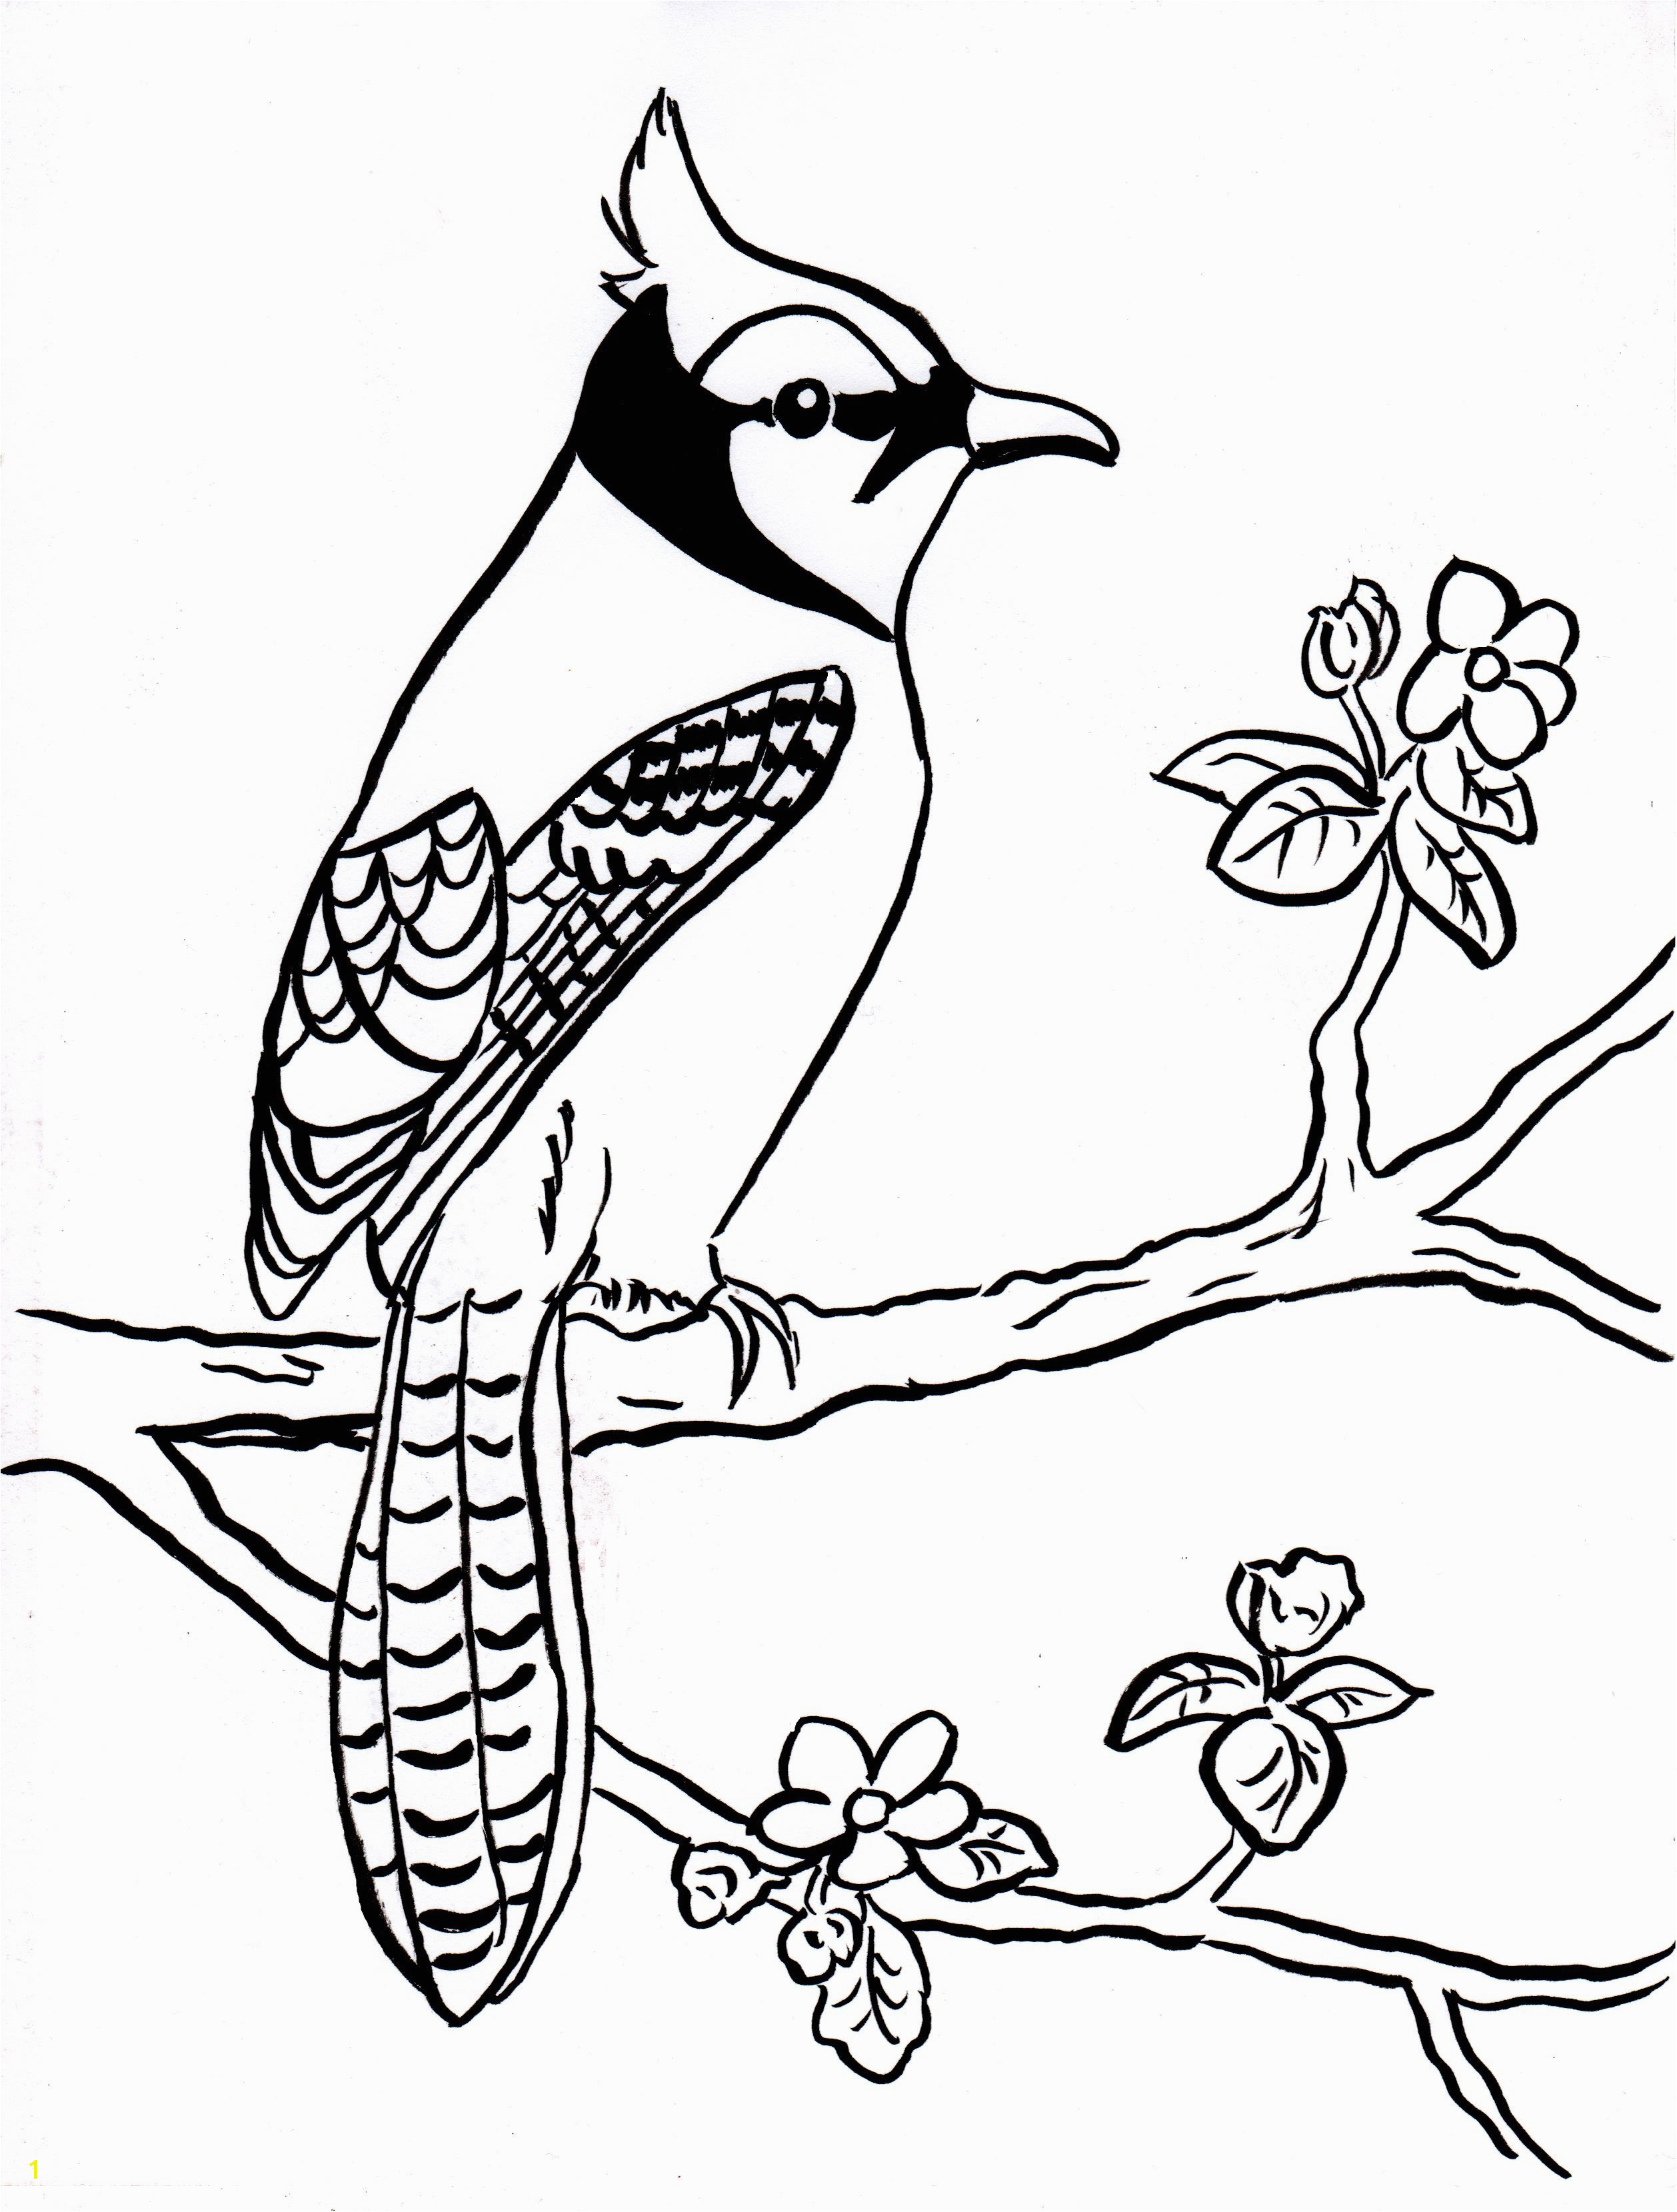 Toronto Blue Jays Logo Coloring Pages Blue Jay Coloring Page Coloring Pages